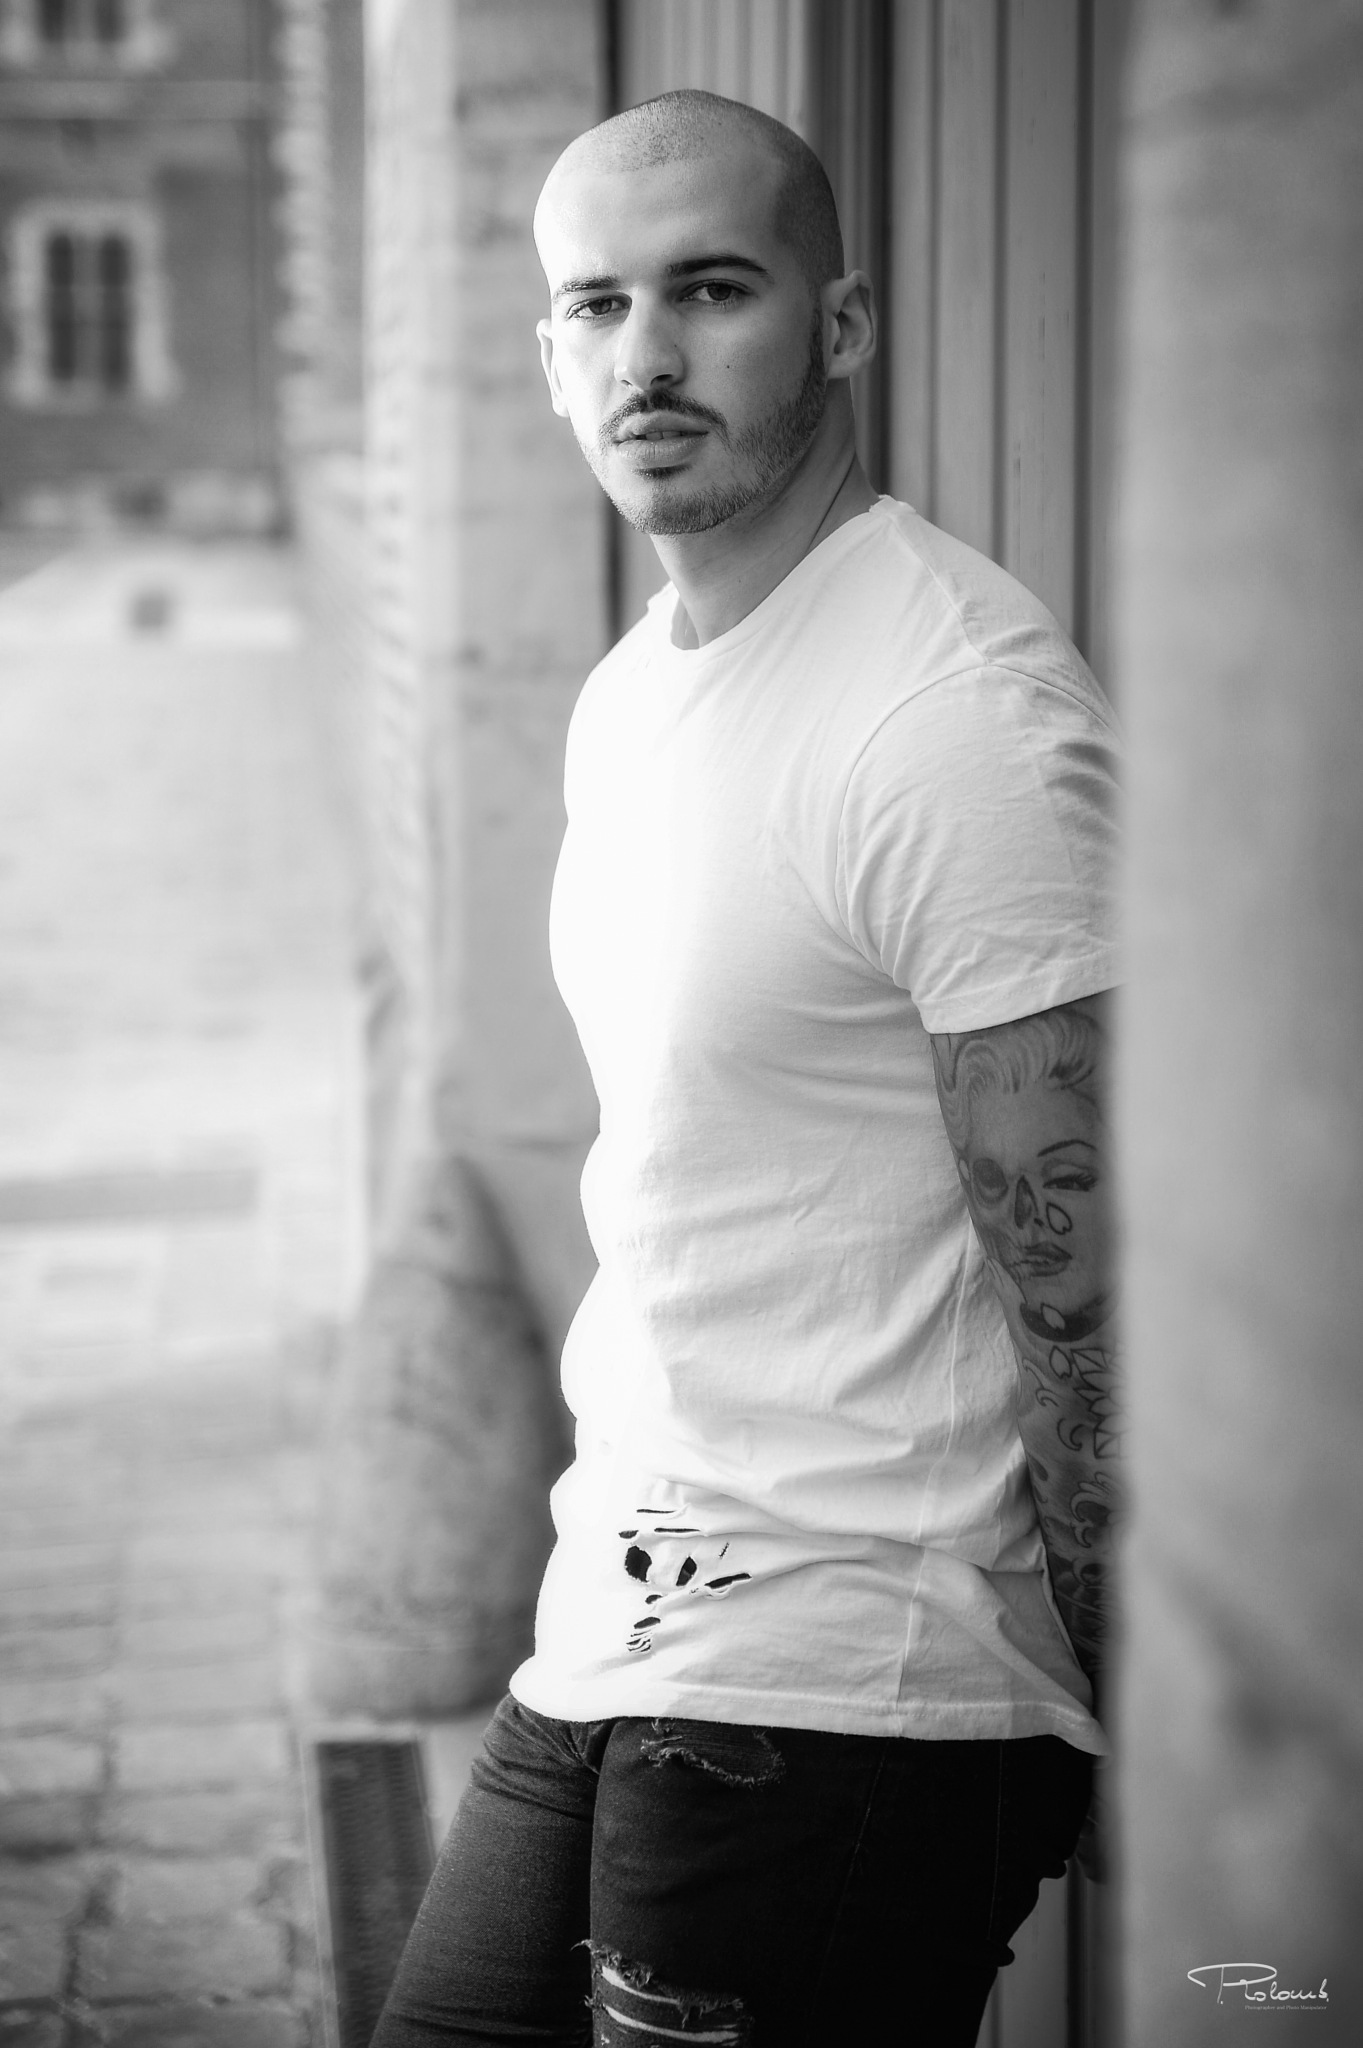 Andreas by Roland Pipeleers